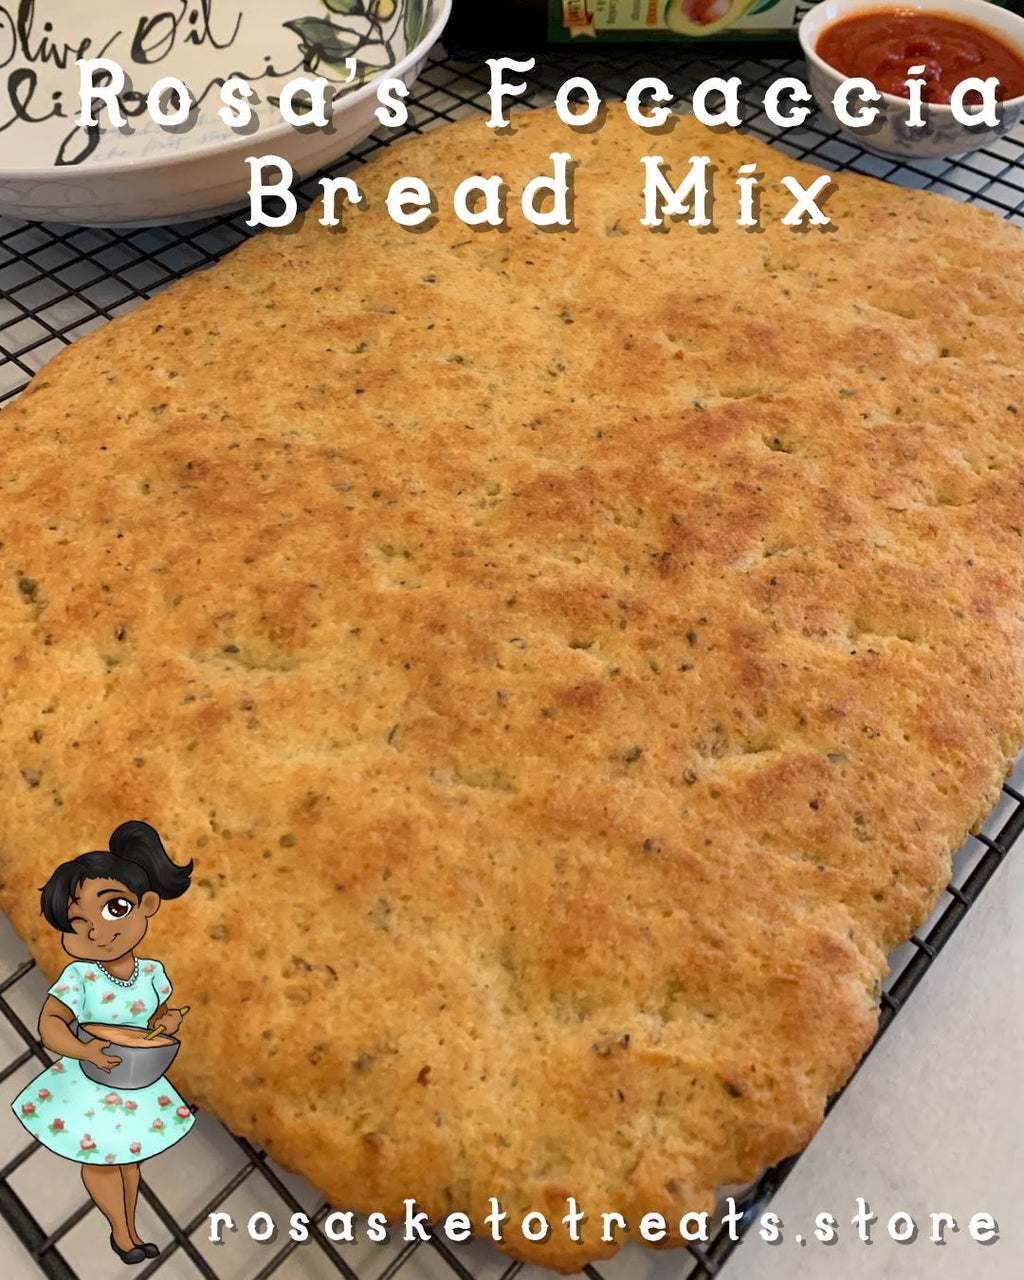 Rosa's Focaccia Bread Mix - Rosa's Keto Treats